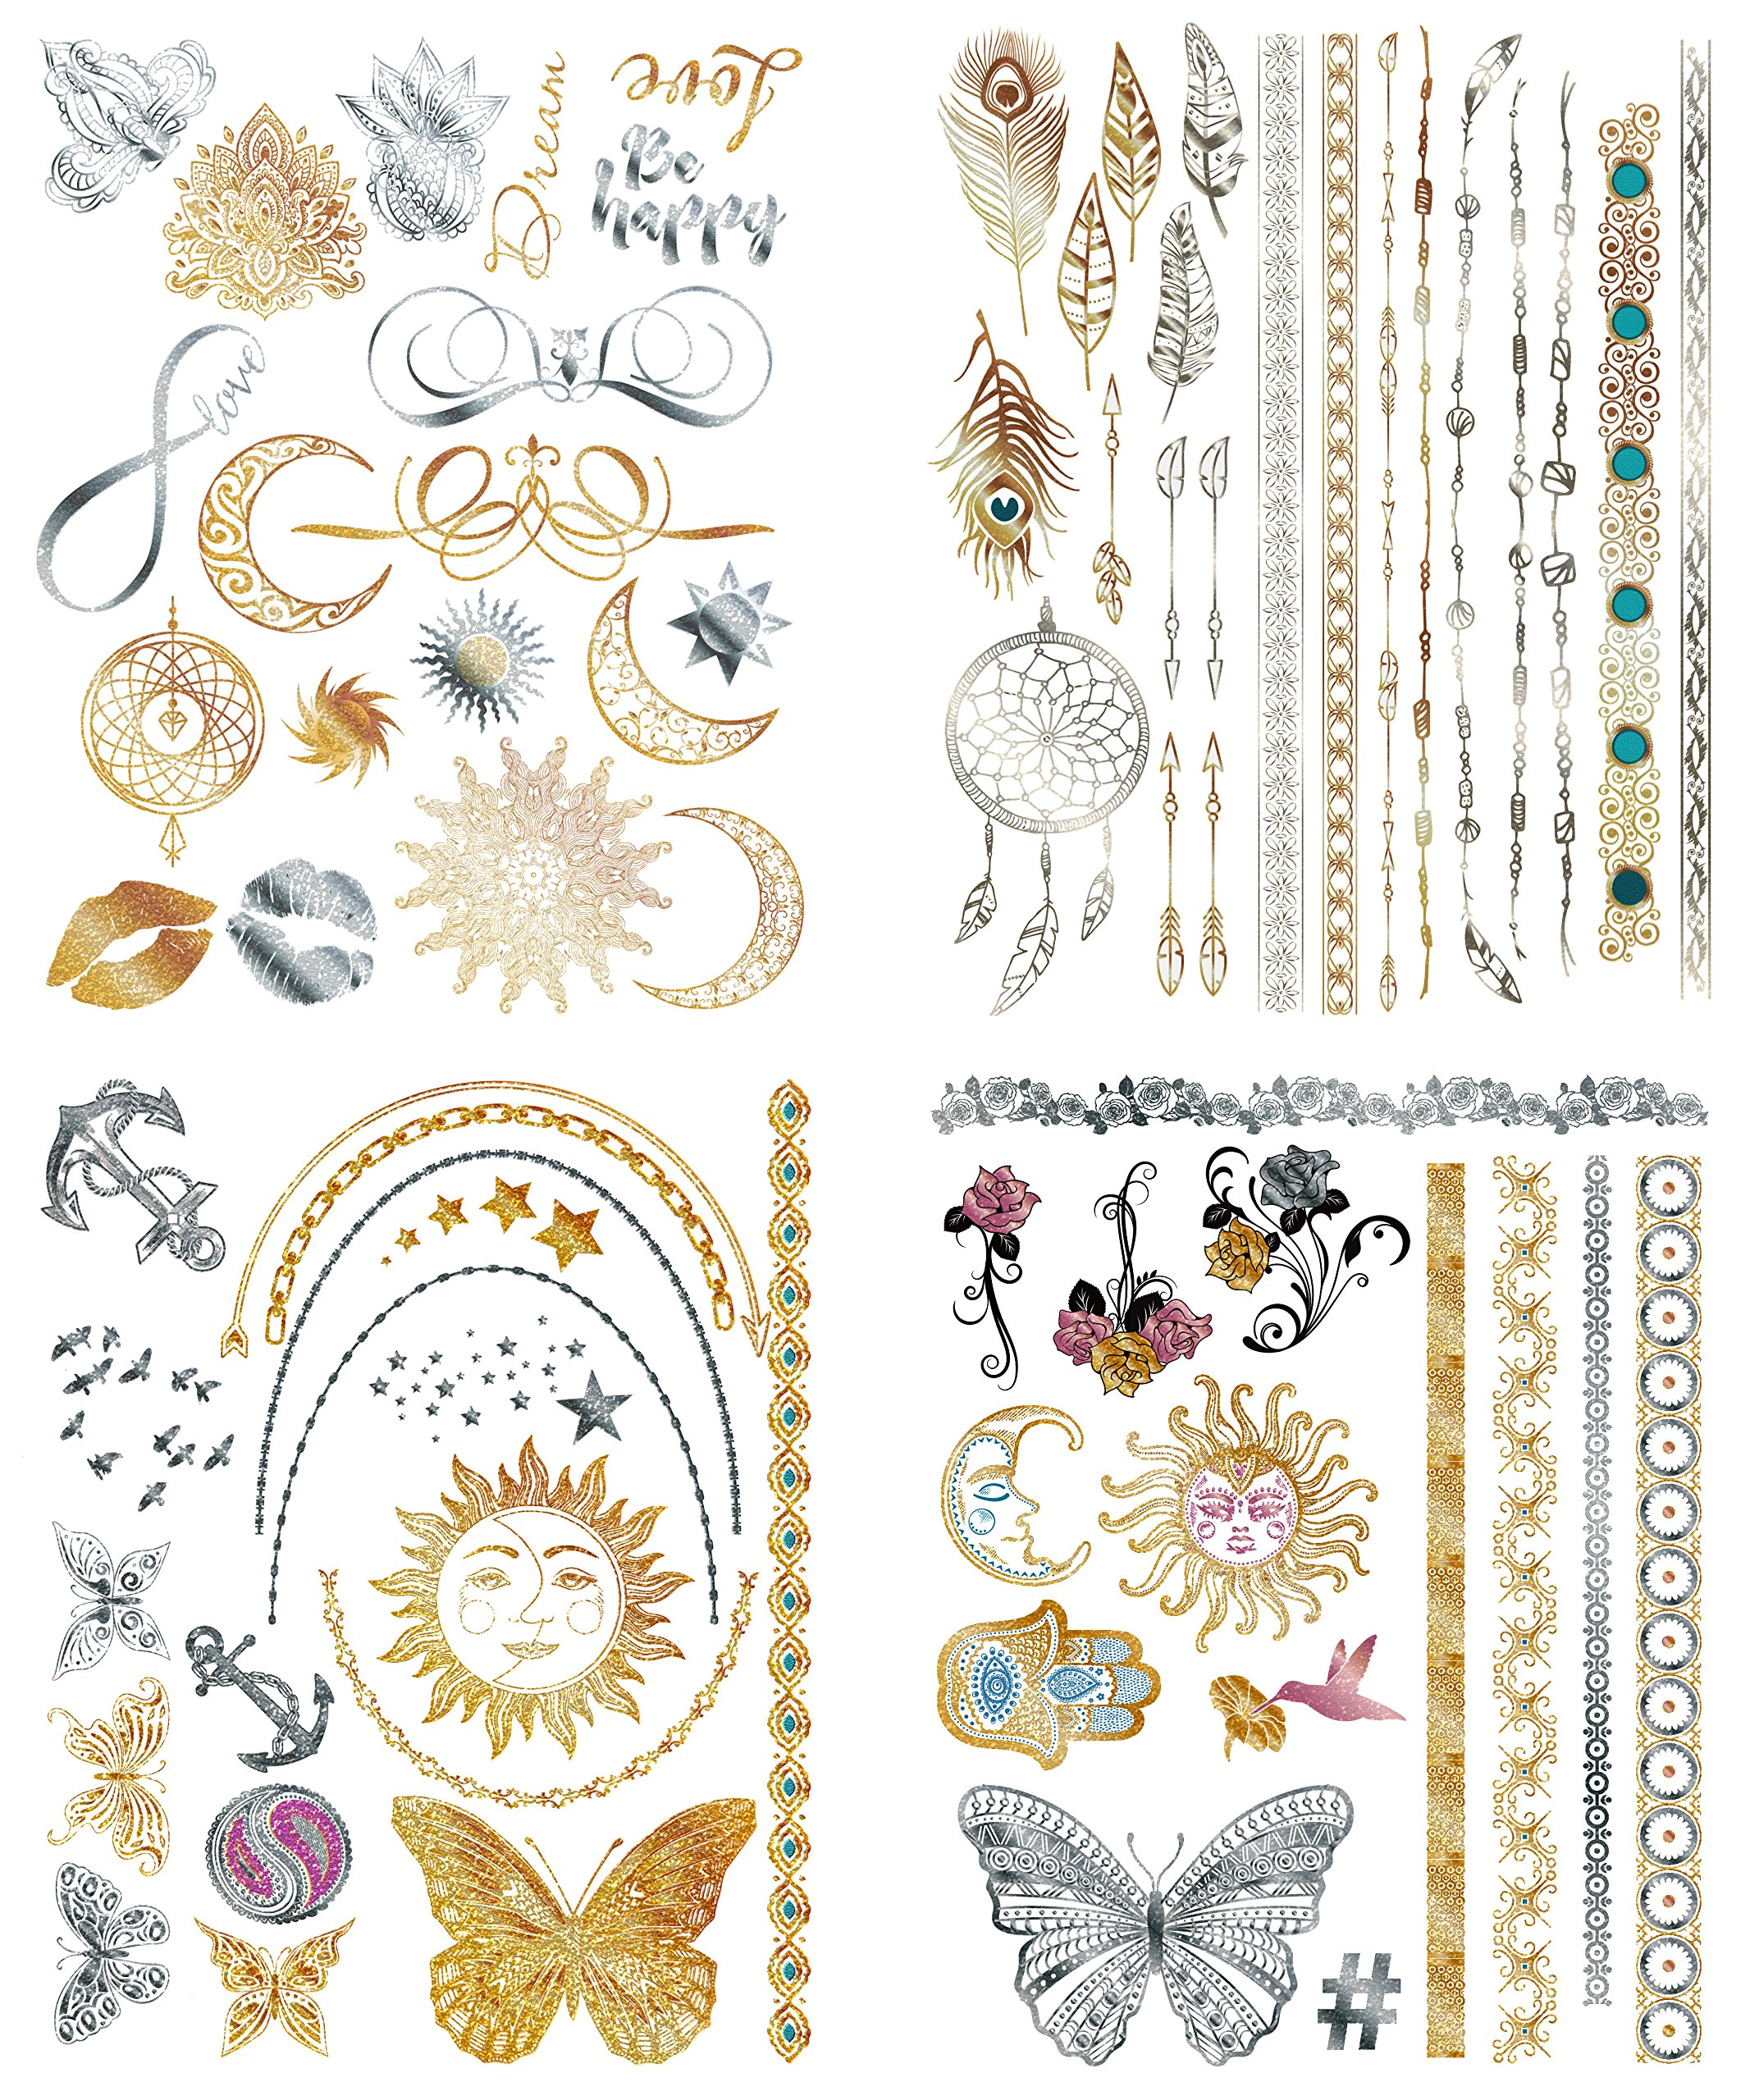 cf28d2133 Flash Metallic Temporary Tattoos For Women - 150+ Boho Tattoos & Mandala  Tattoos with Gold & Silver Shimmer - 8 Large Sheets of Bachelorette Tattoos  Include ...